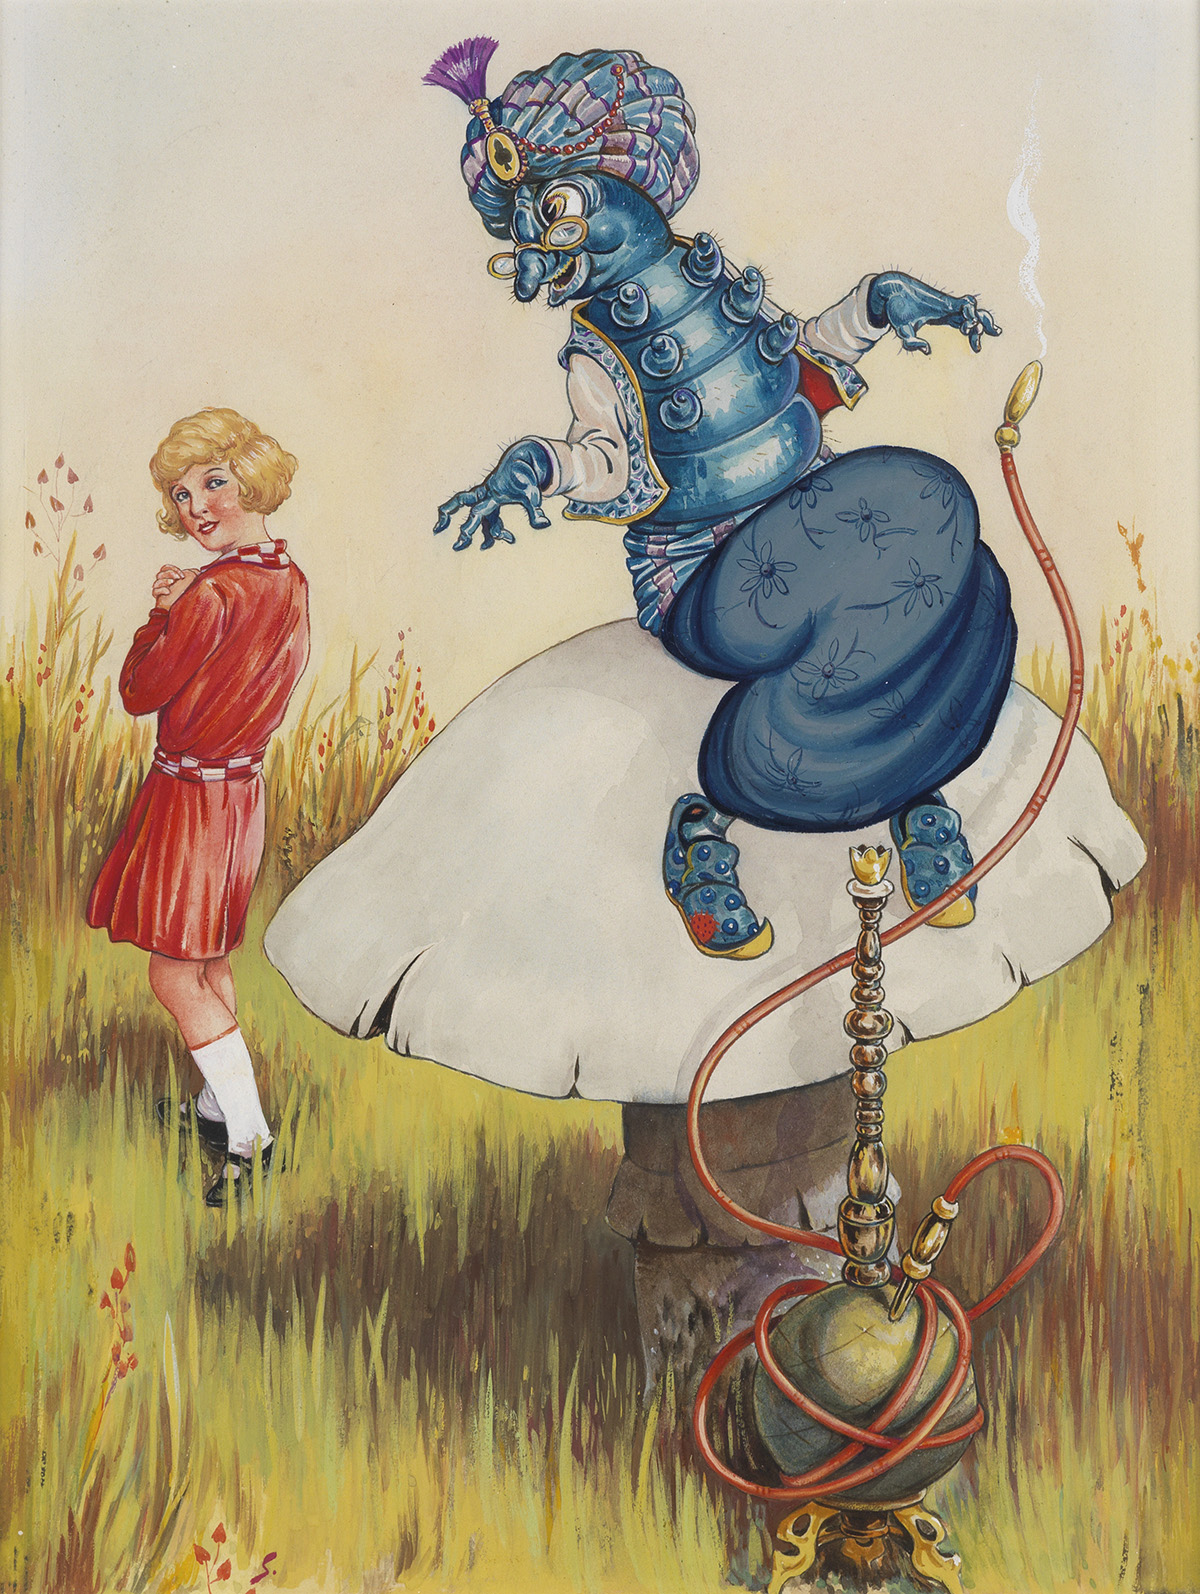 CHILDRENS ALICE IN WONDERLAND D. R. SEXTON. Come Back! the caterpillar called after her.